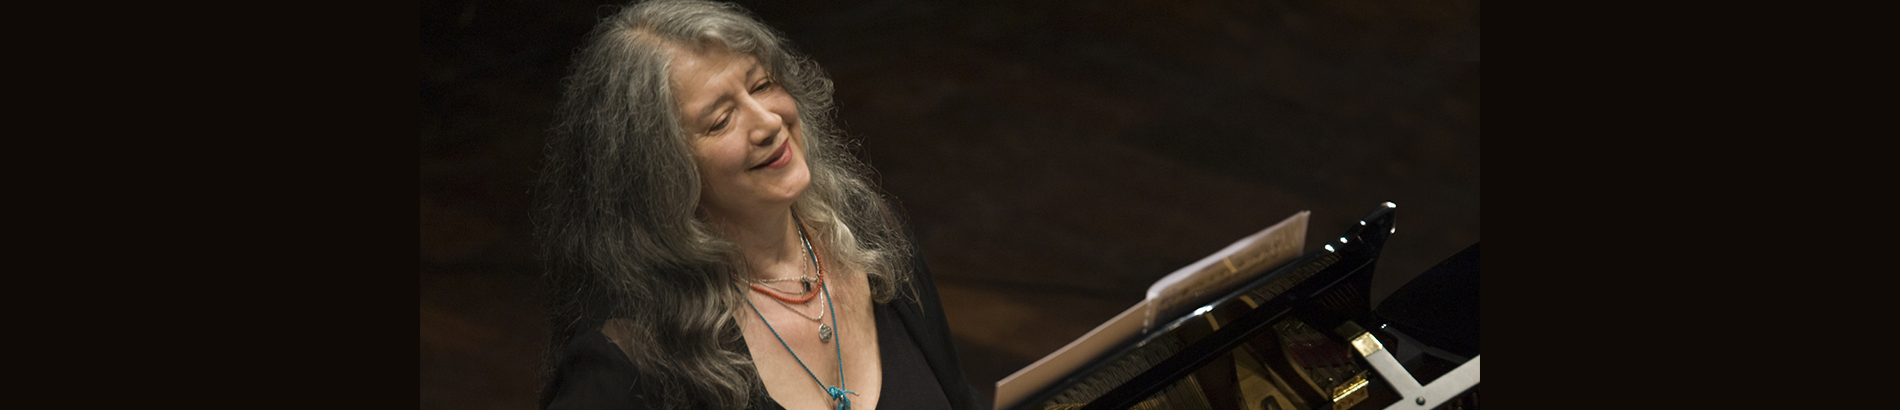 Sir Antonio Pappano conducts Verdi, Prokofiev, and Respighi – With Martha Argerich